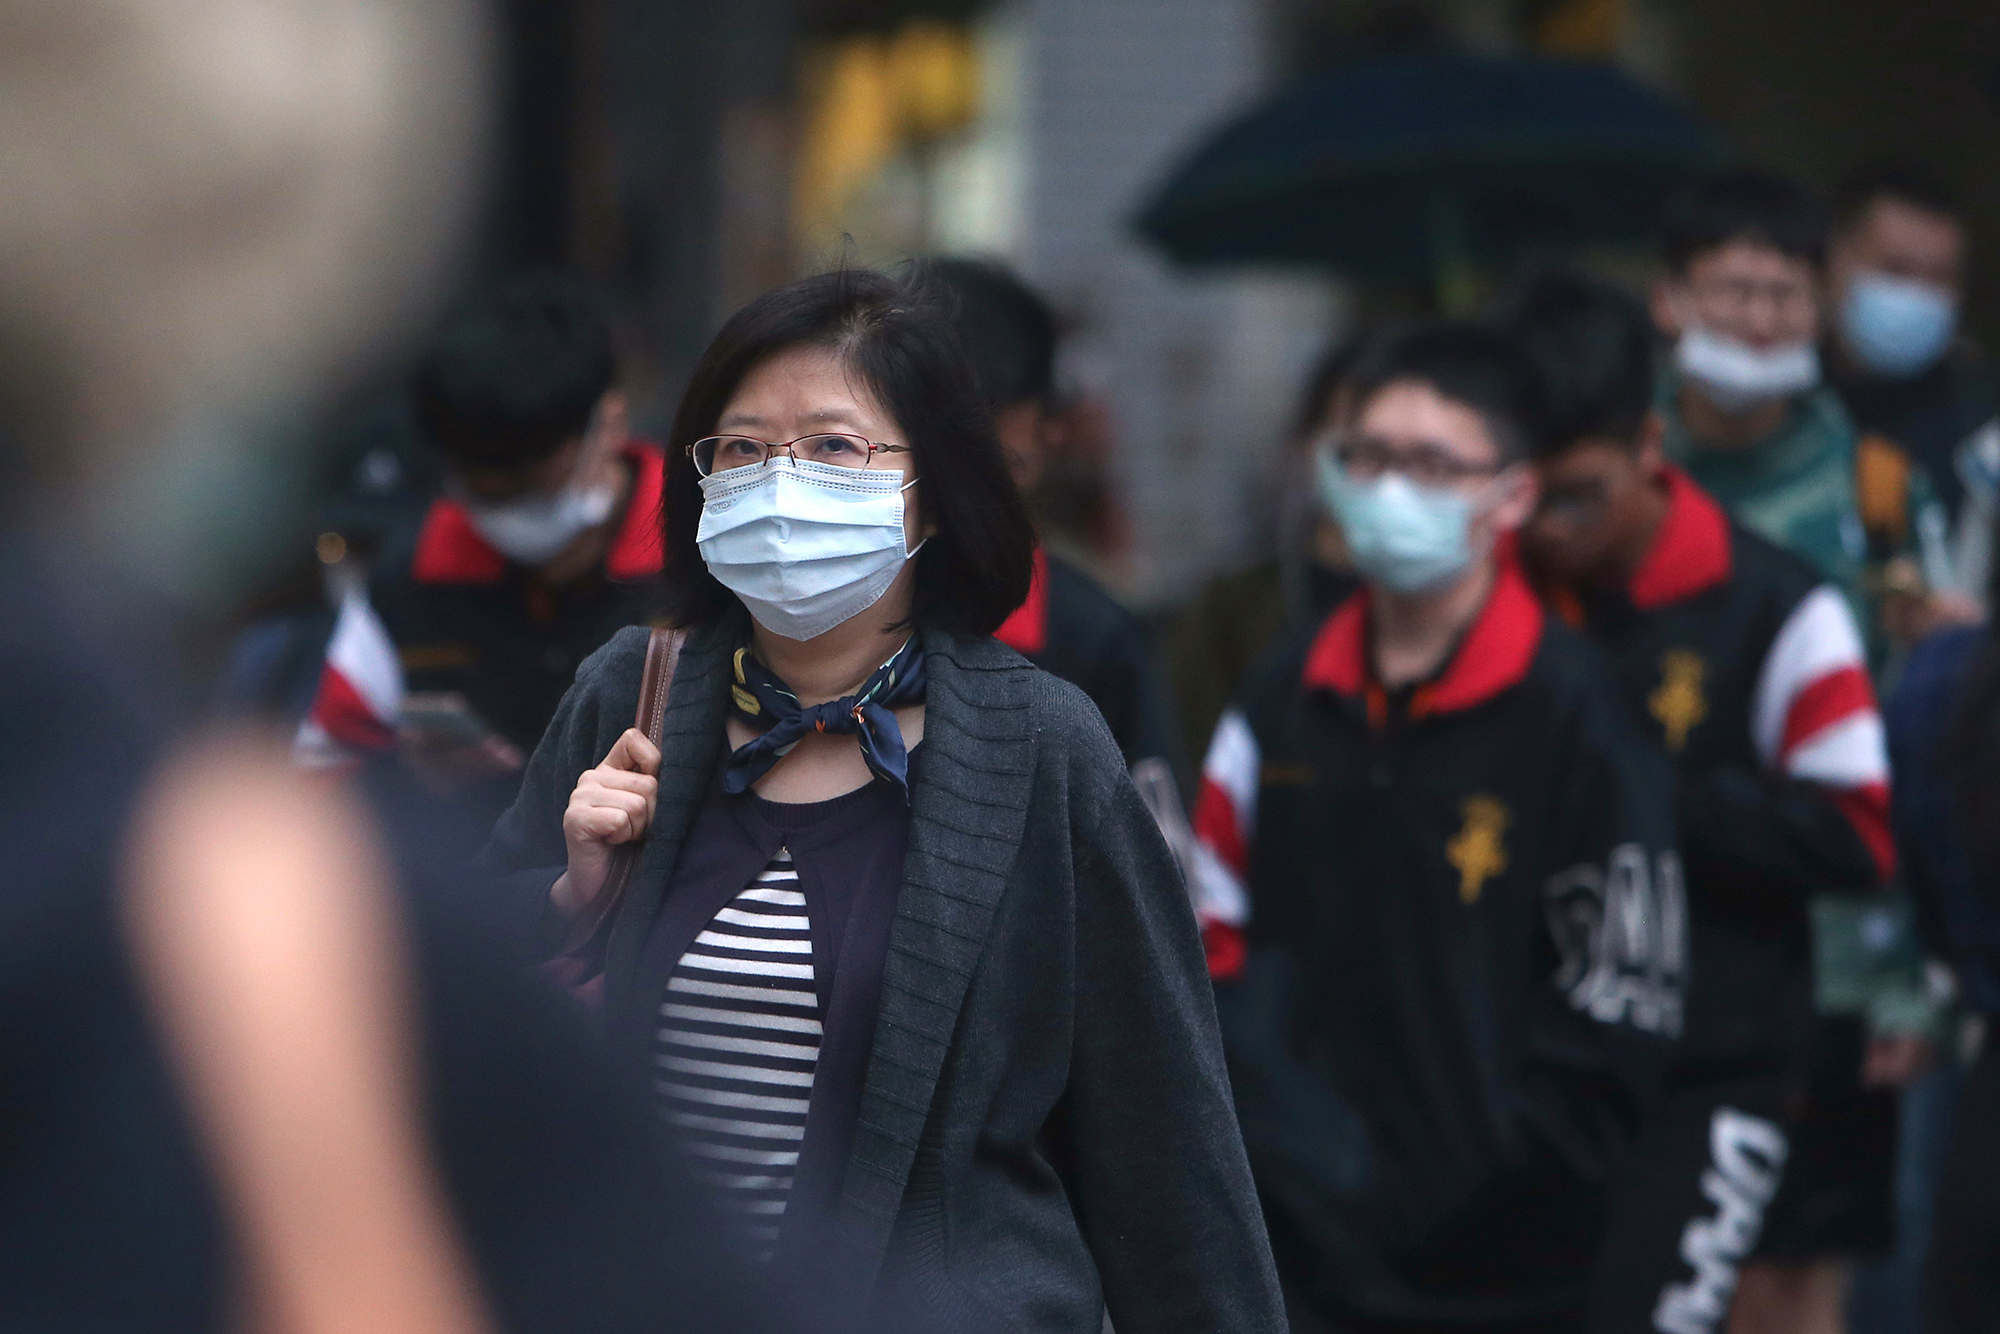 Taiwan will spend up to $35 billion on virus stimulus plan and is donating 10 million masks